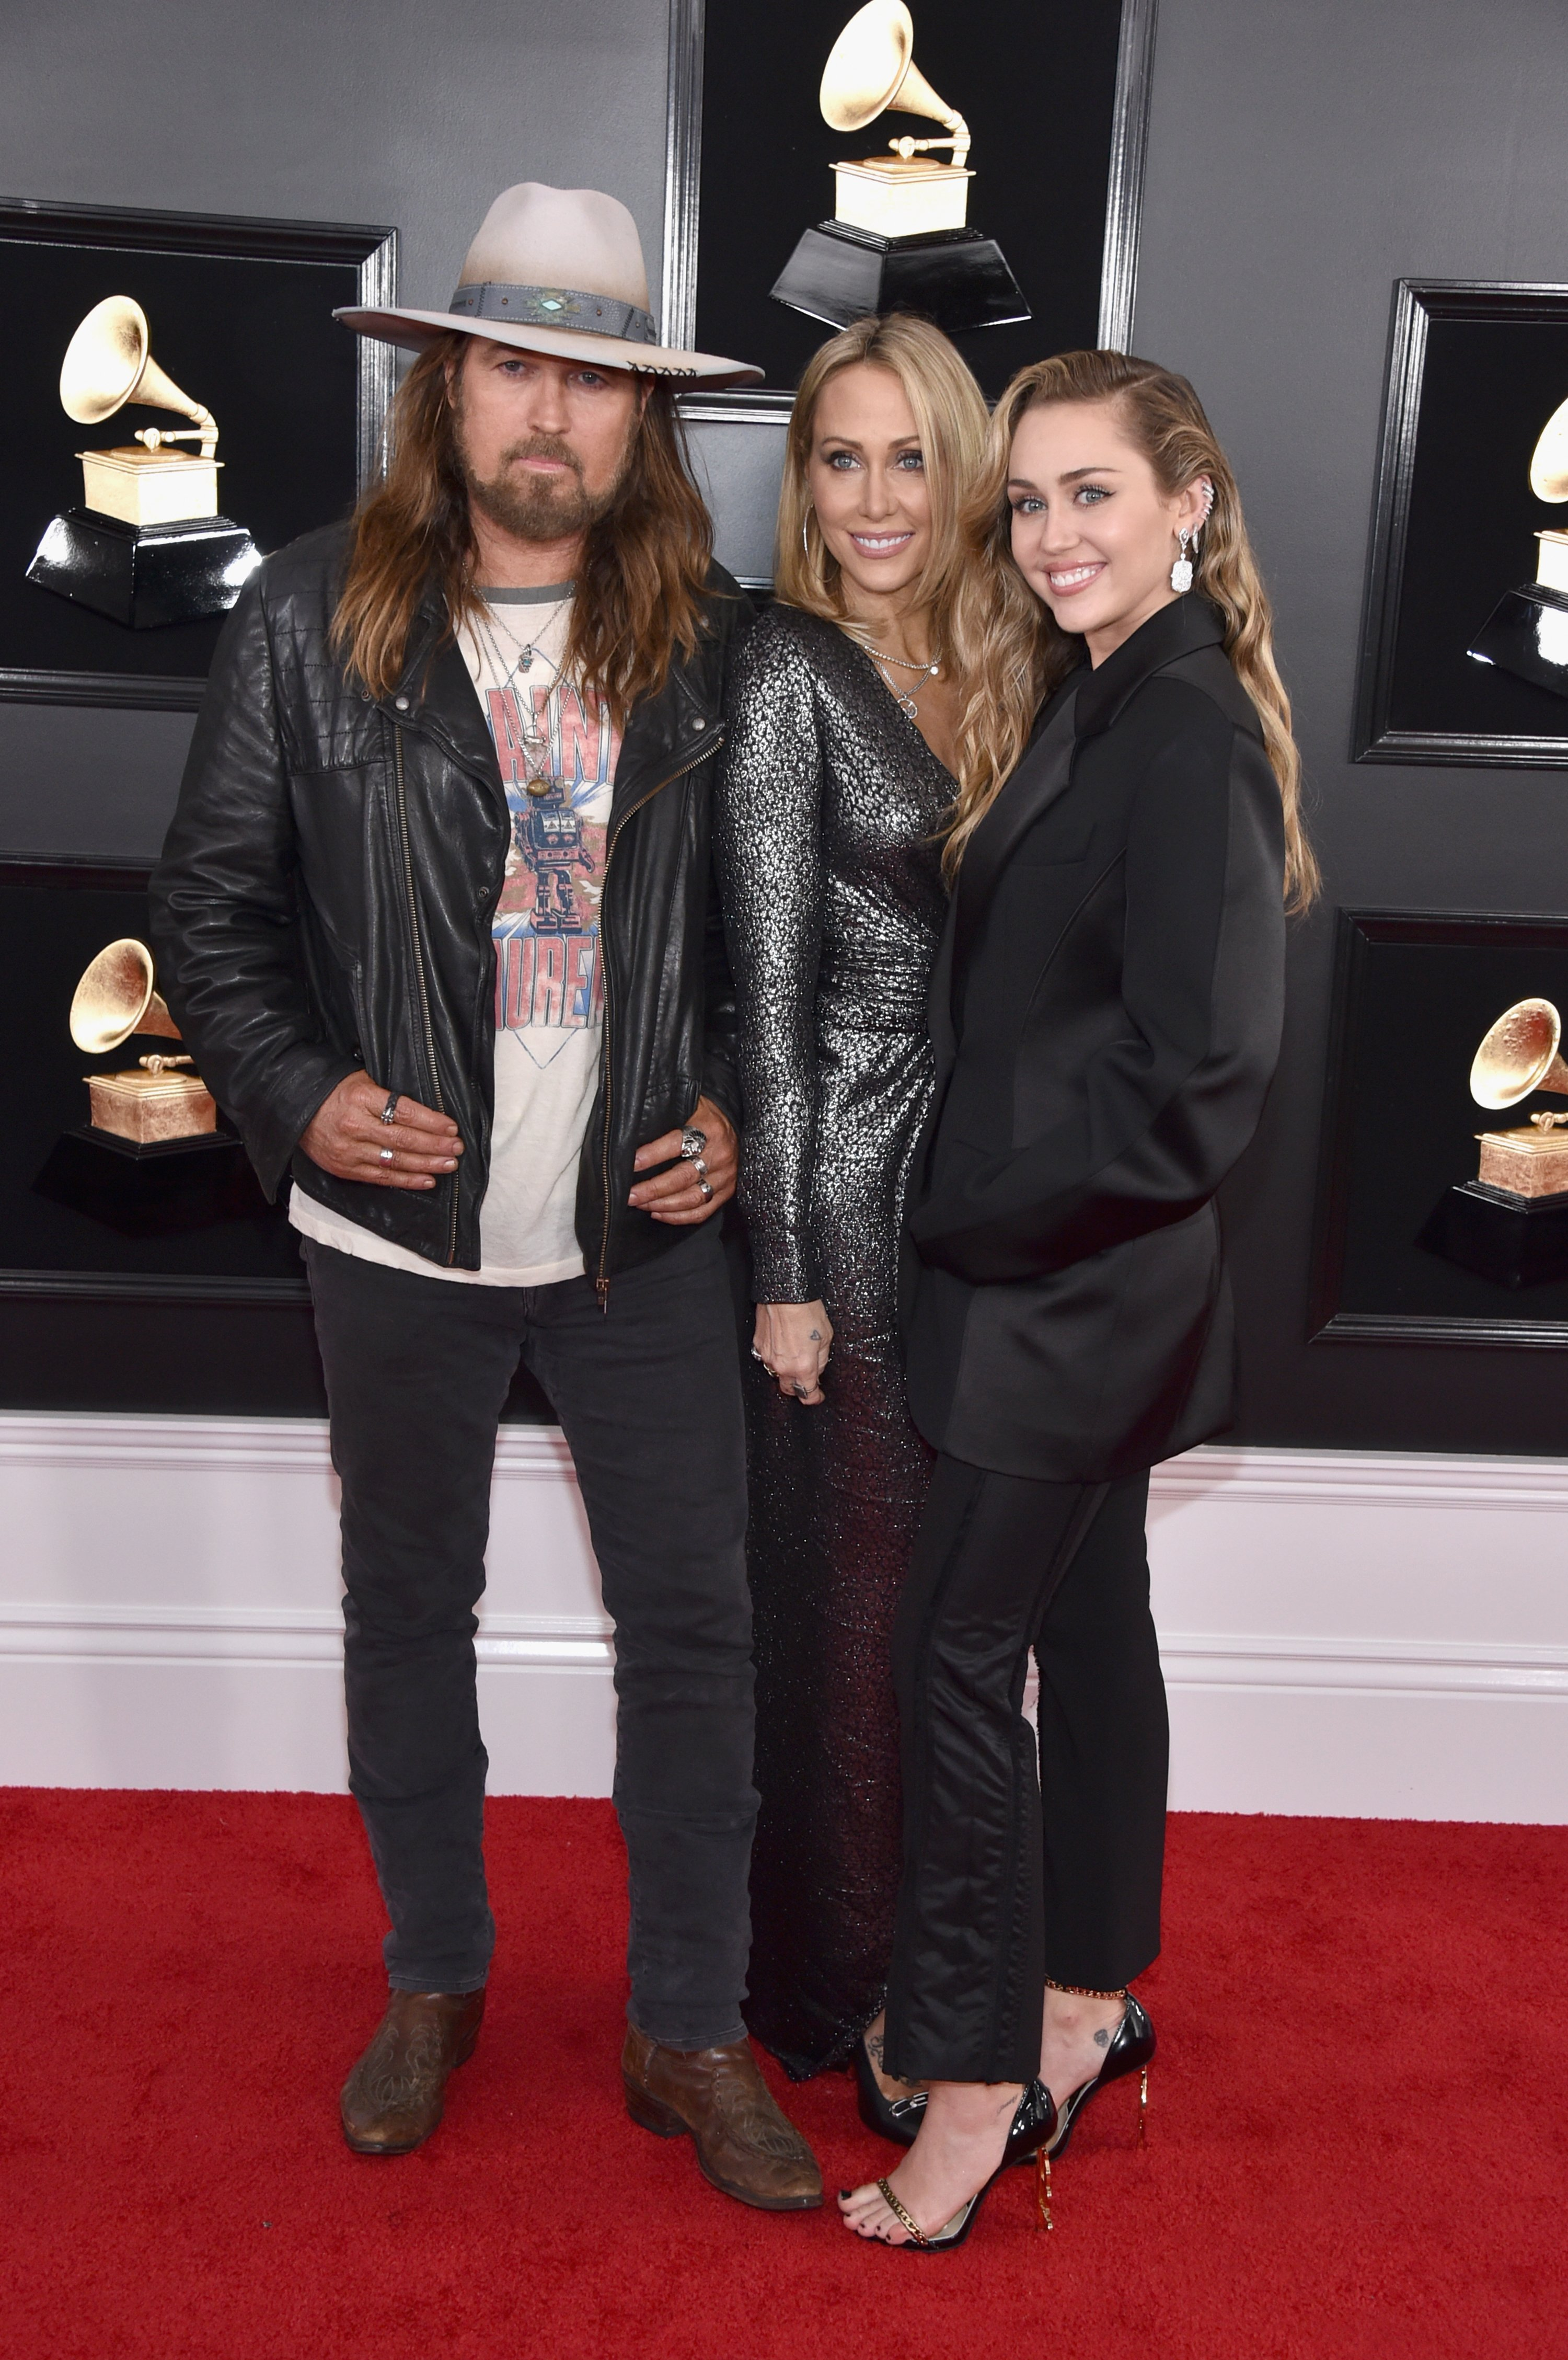 Billy Ray Cyrus, Tish Cyrus, and Miley Cyrus attend the 61st Annual GRAMMY Awards at Staples Center on February 10, 2019, in Los Angeles, California. | Source: Getty Images.